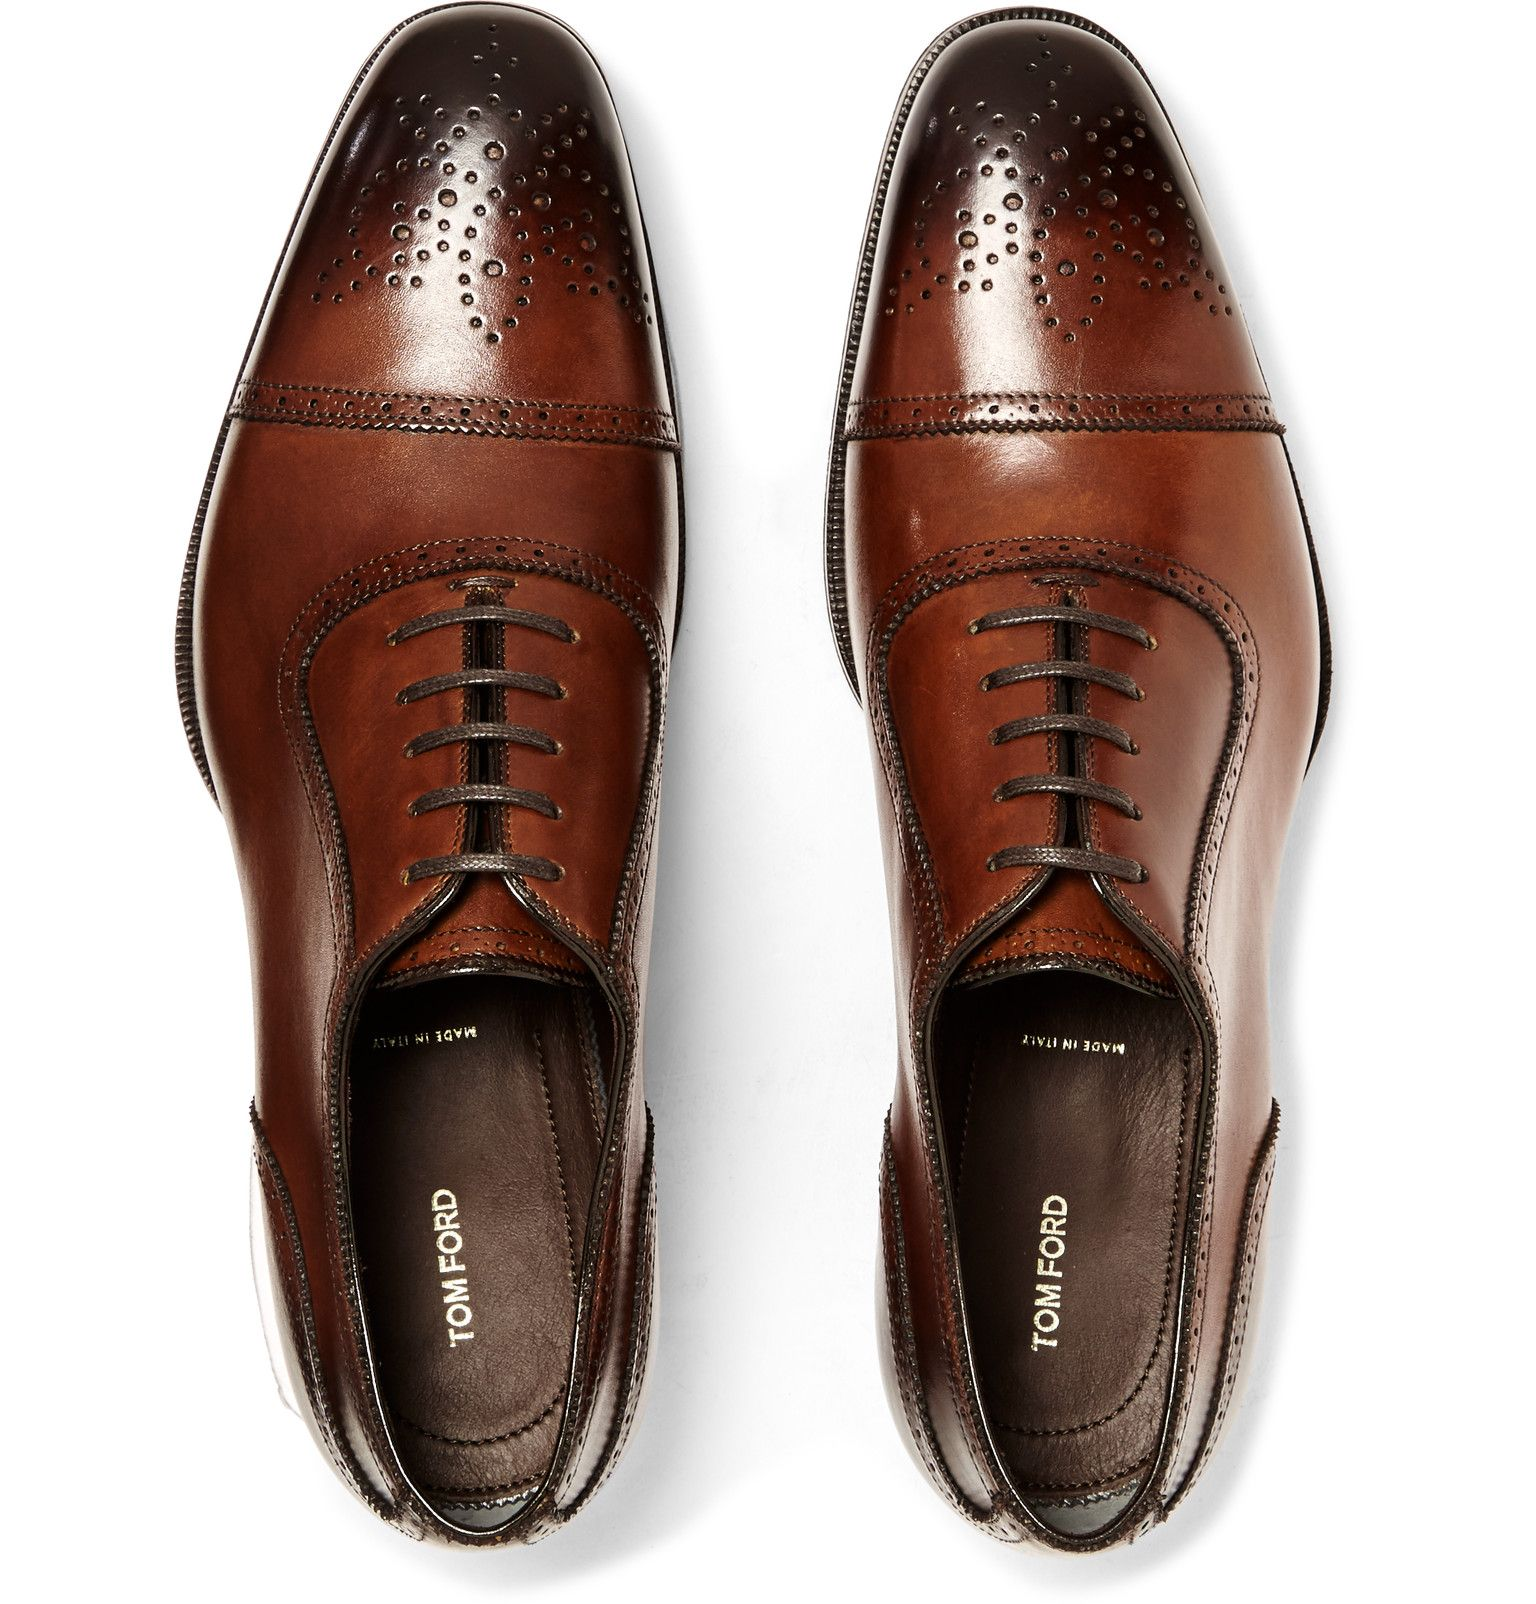 Tom Ford Austin Cap Toe Burnished Leather Oxford Brogues